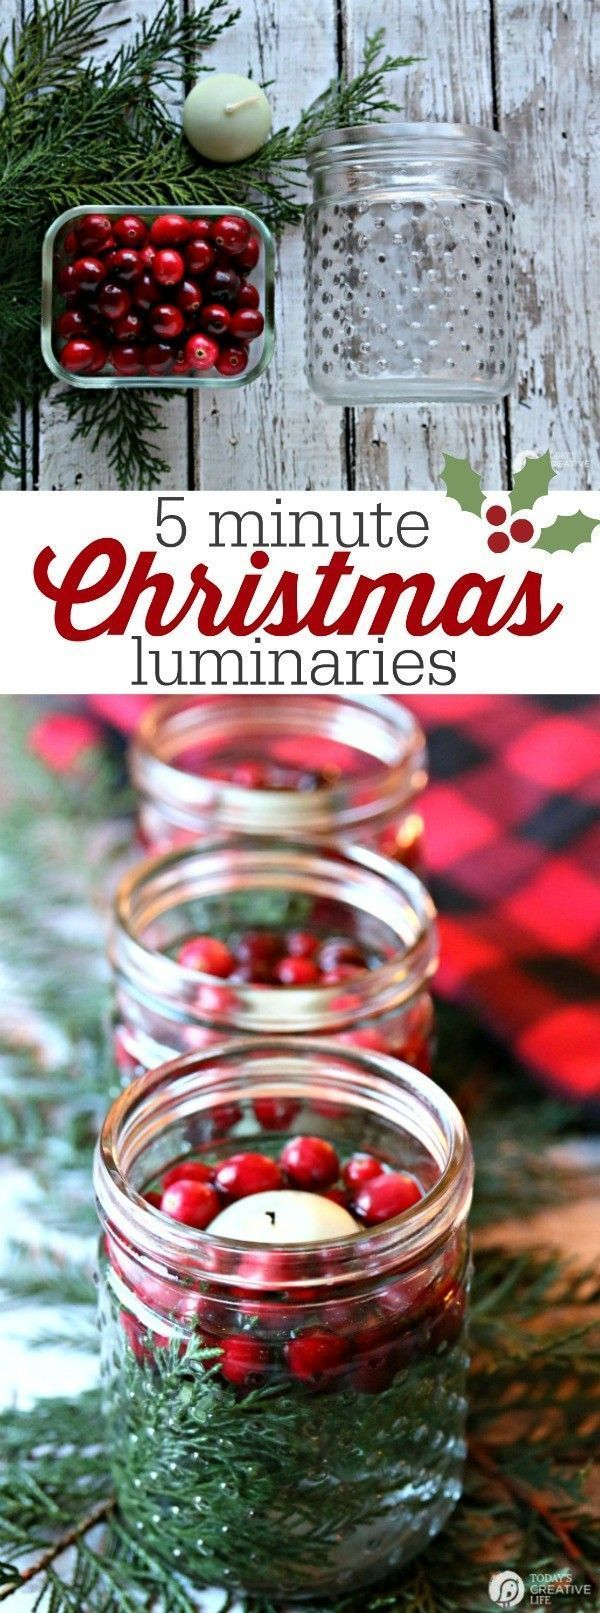 5 minute DIY Christmas luminaries   Quick and easy Christmas decorating. Whip up these floating candles with cranberries and cedar for a stunning table centerpiece.